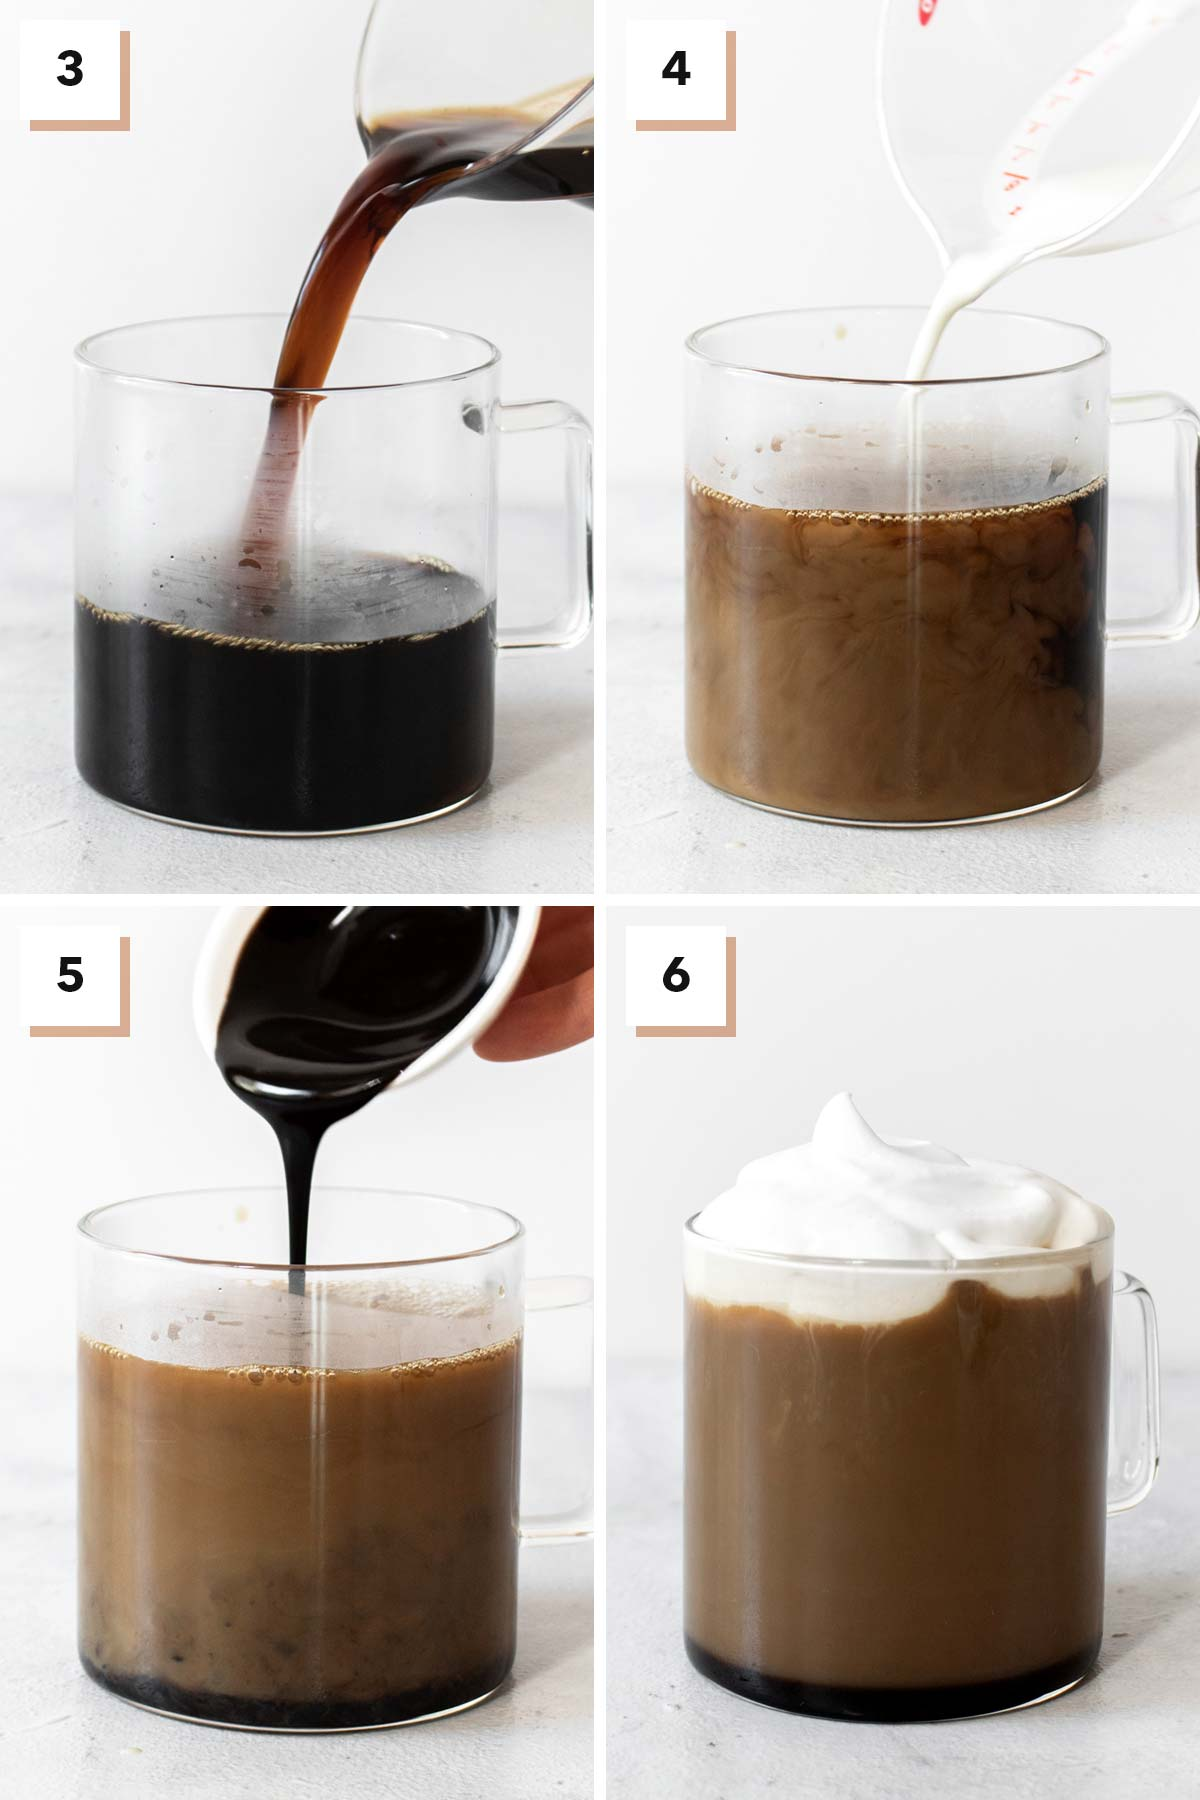 Four photos showing the assembly of a mocha drink.